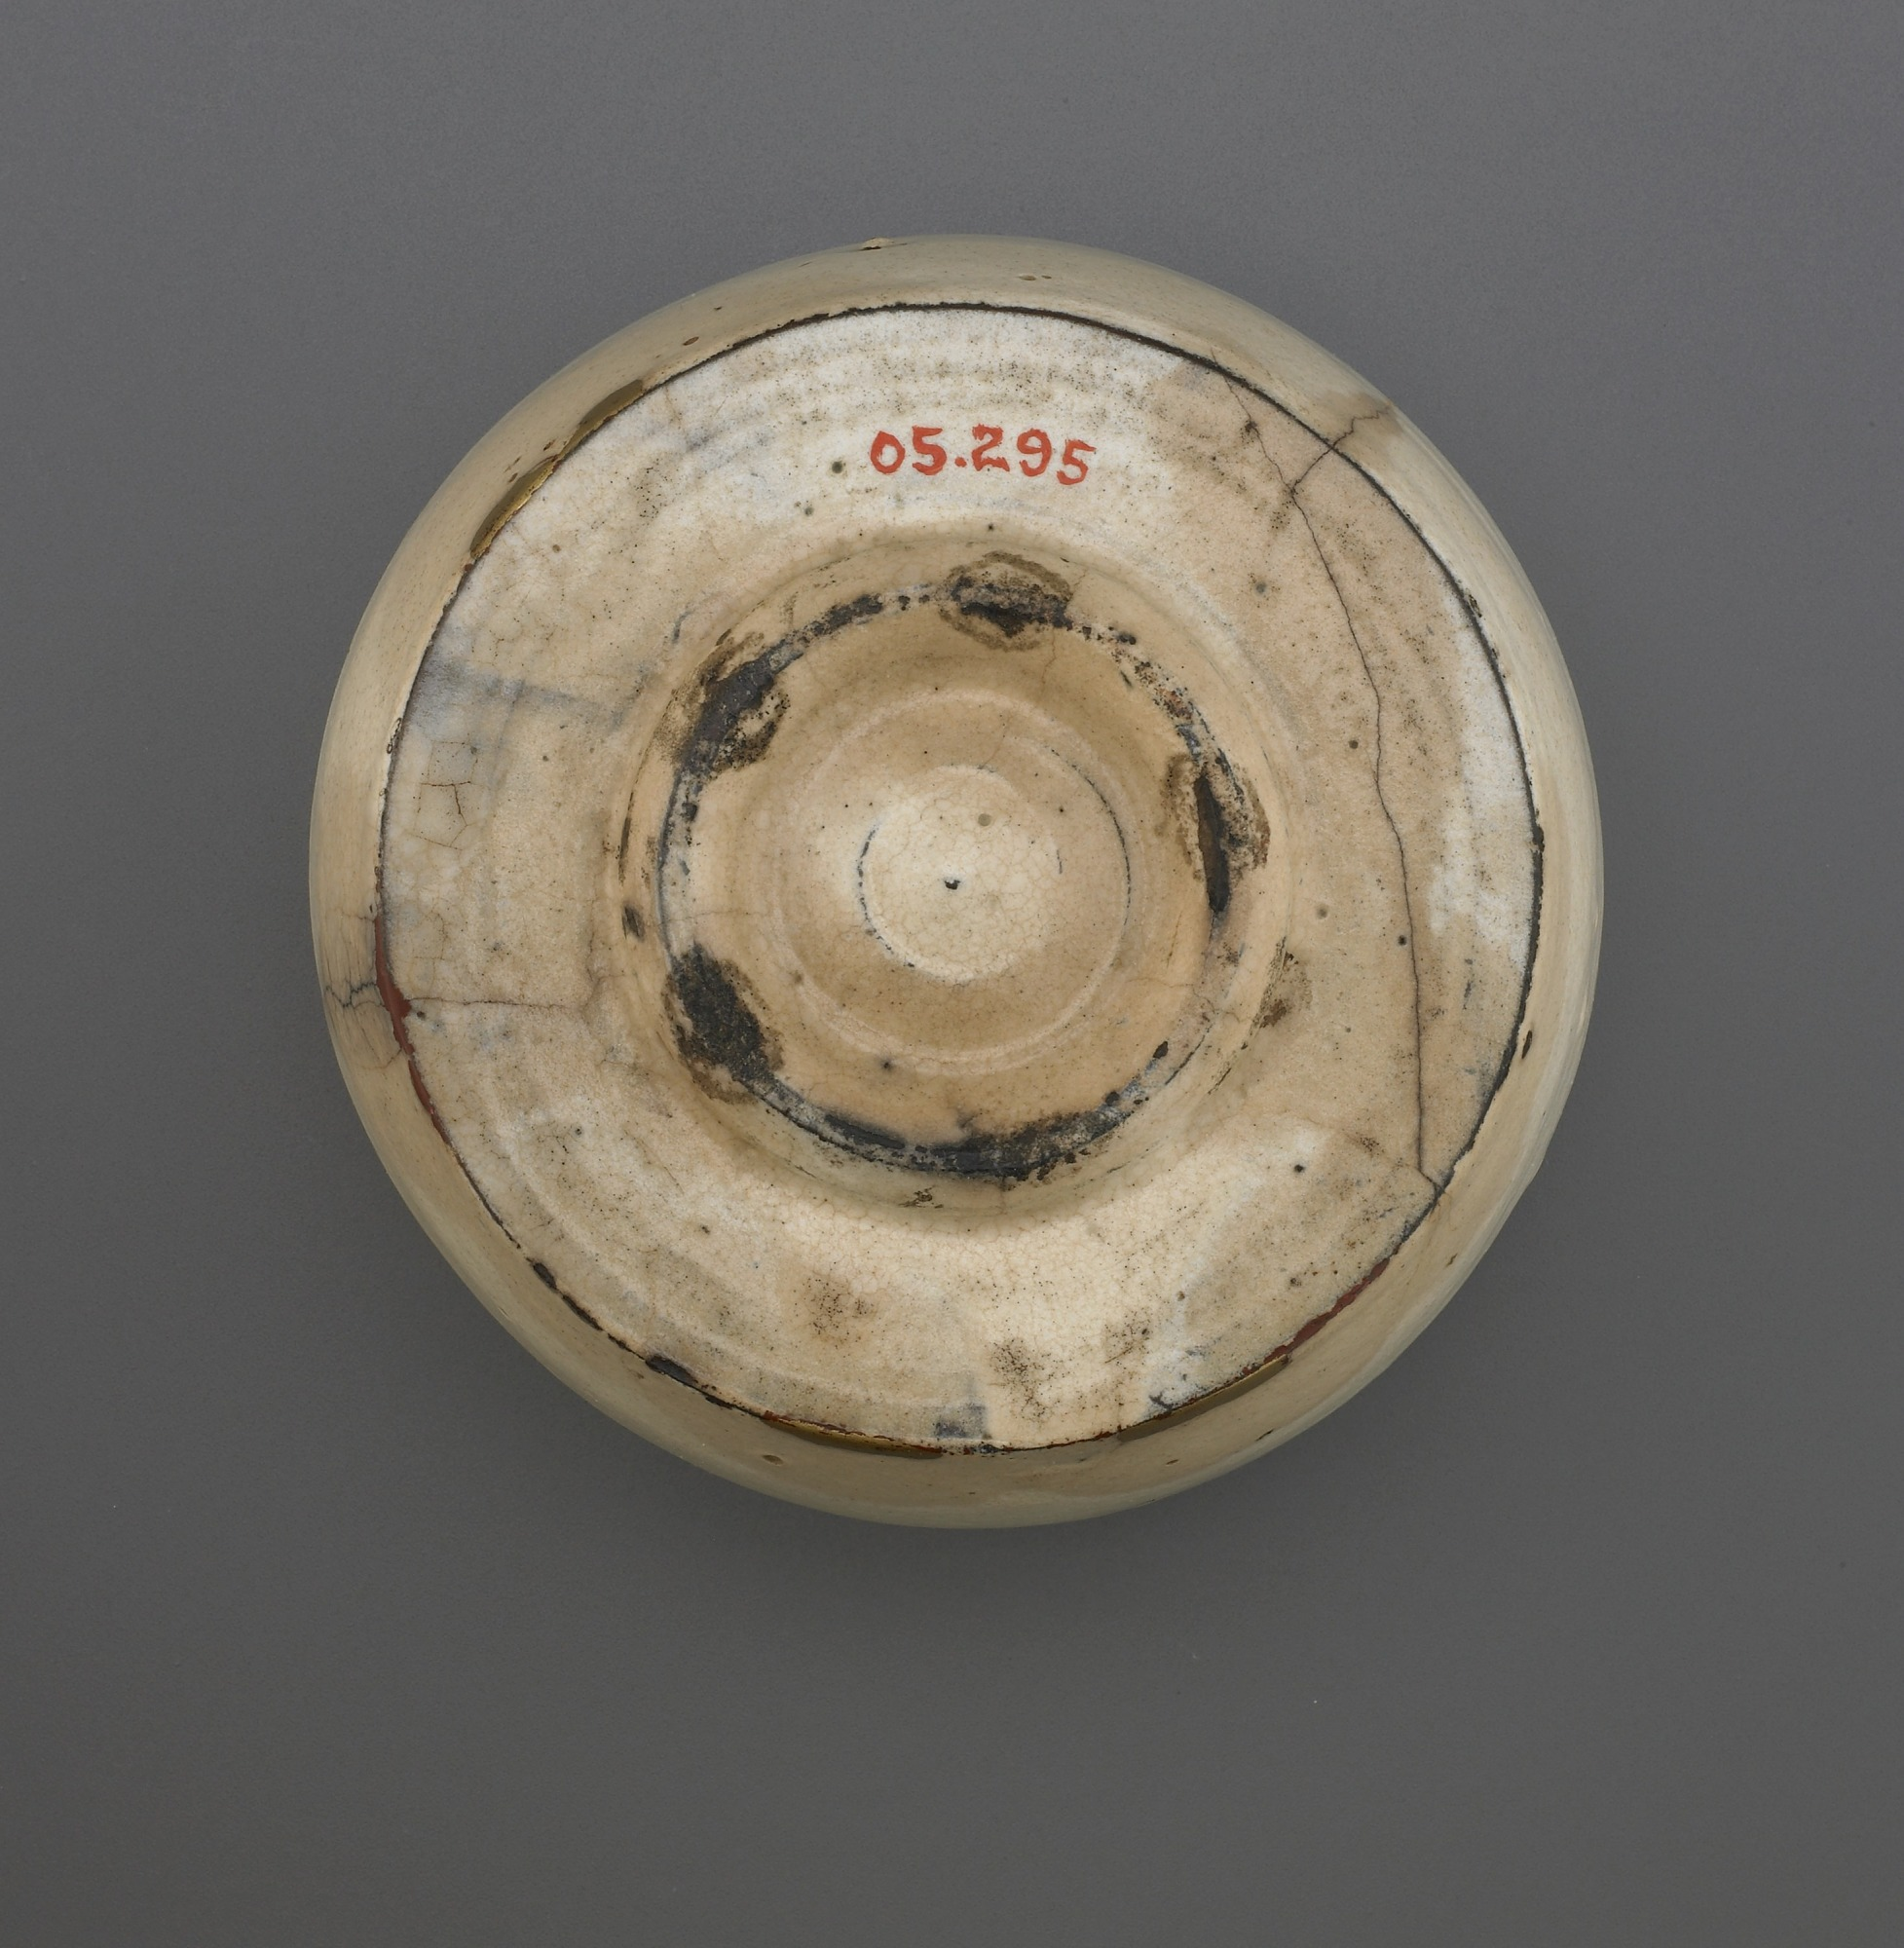 base: Cylindrical tea bowl